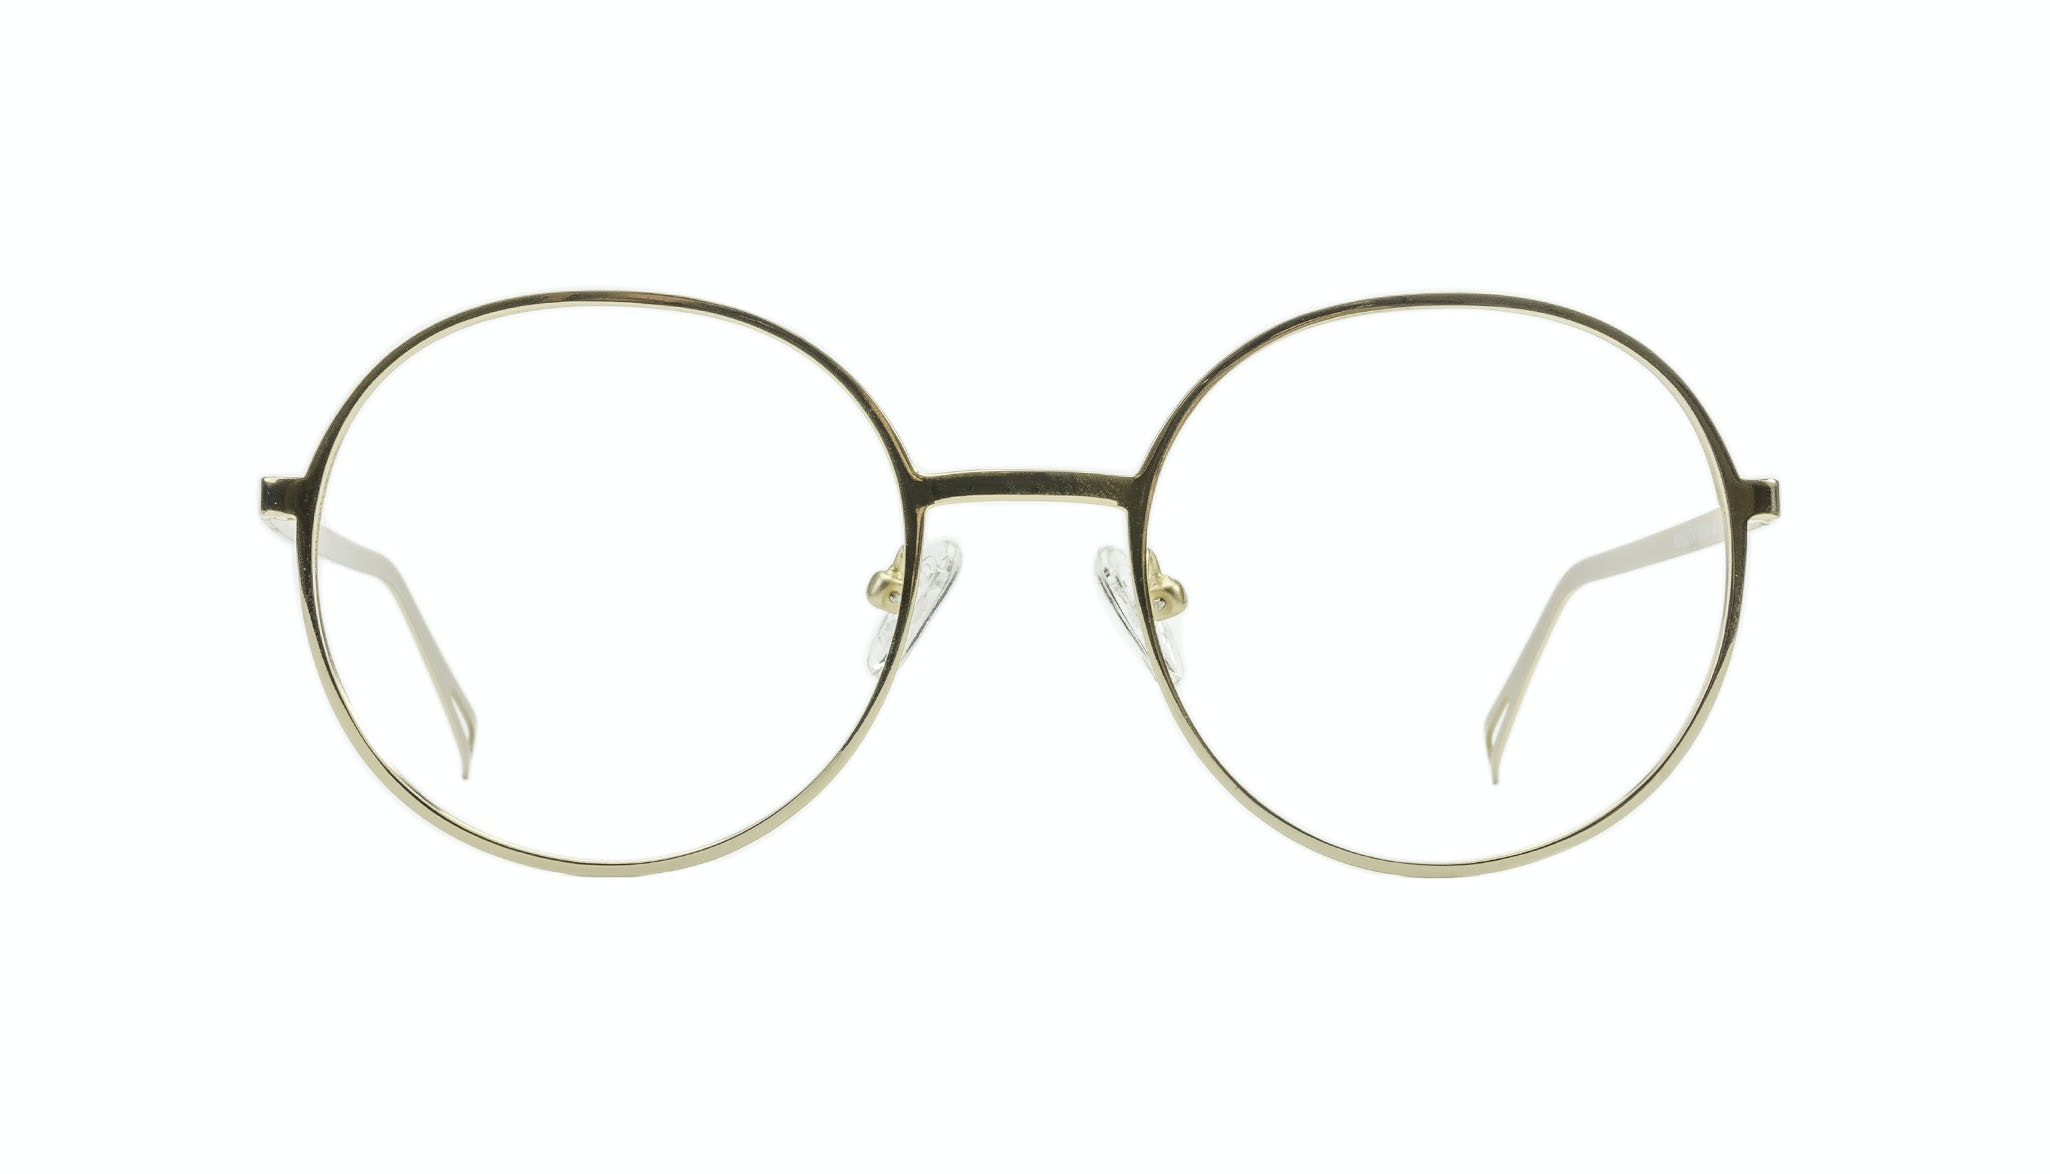 Affordable Fashion Glasses Round Eyeglasses Men Women Varna Gold Front